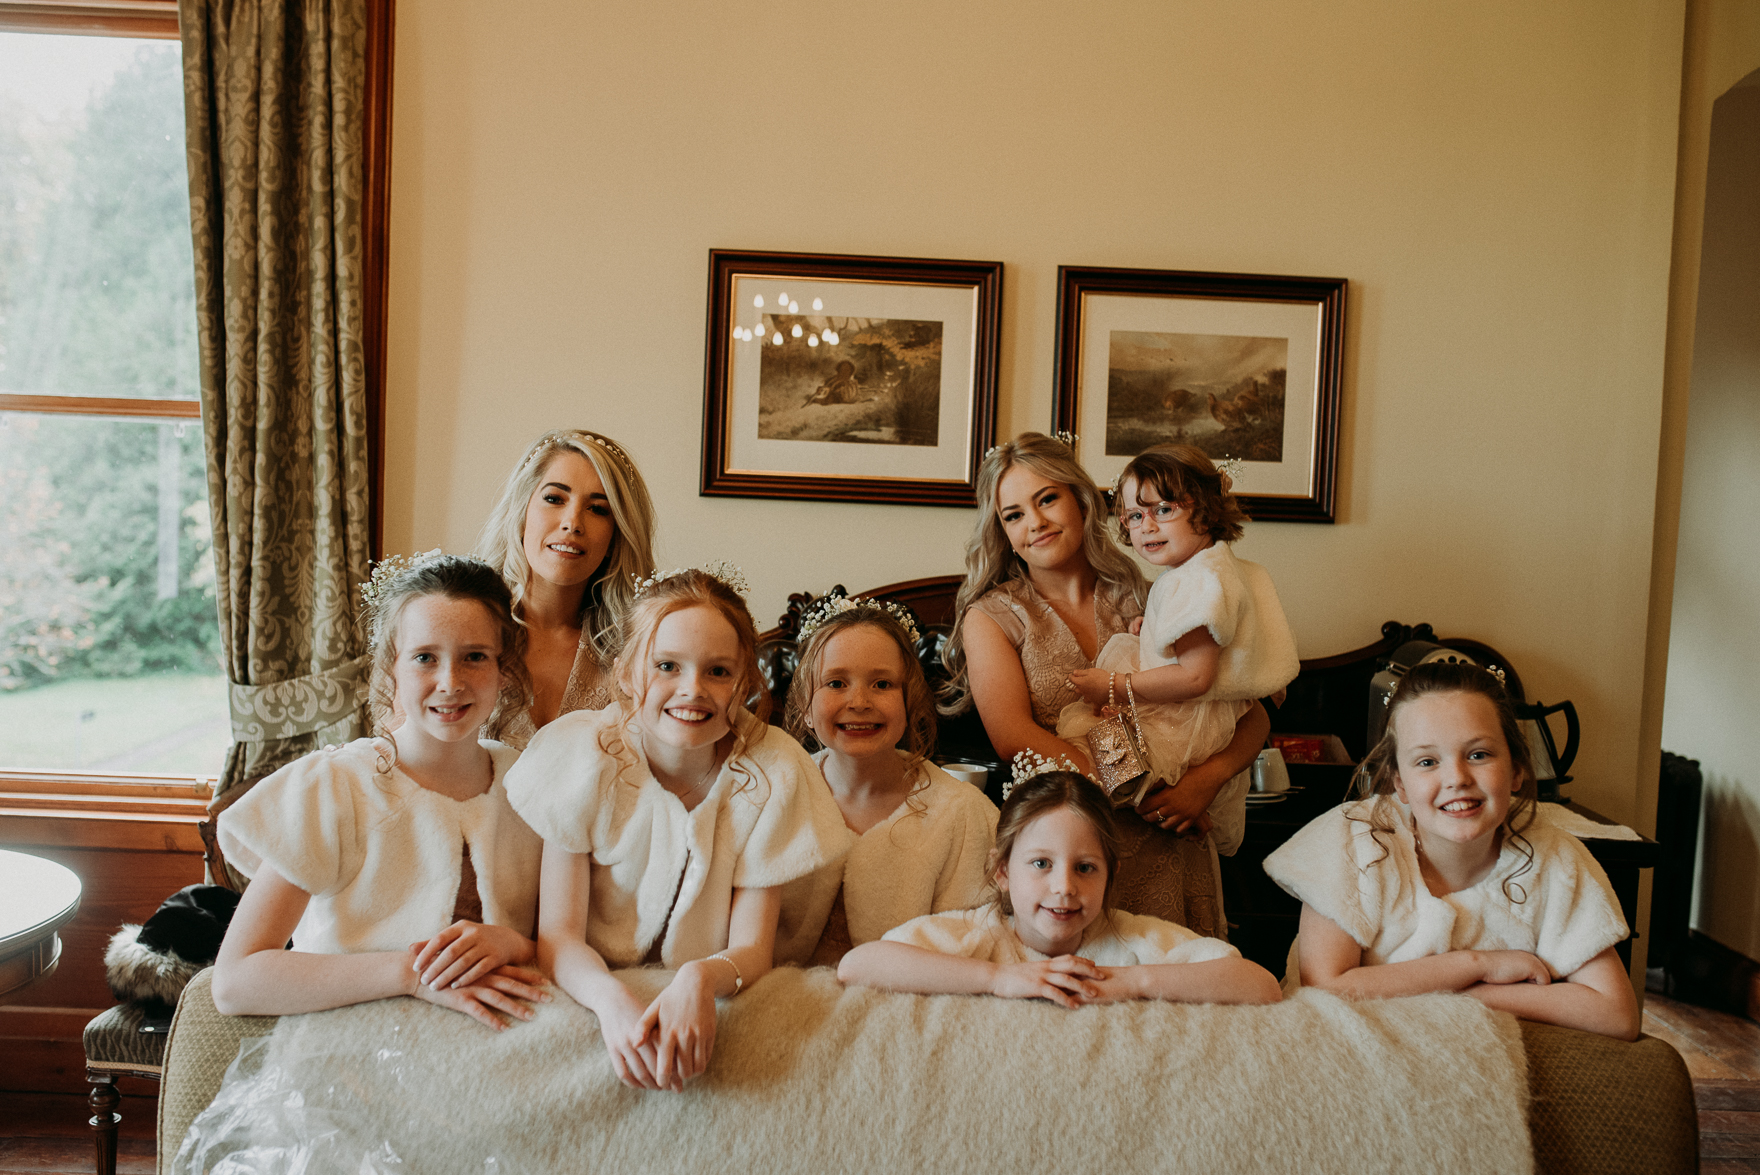 A group of people sitting on a bed posing for the camera